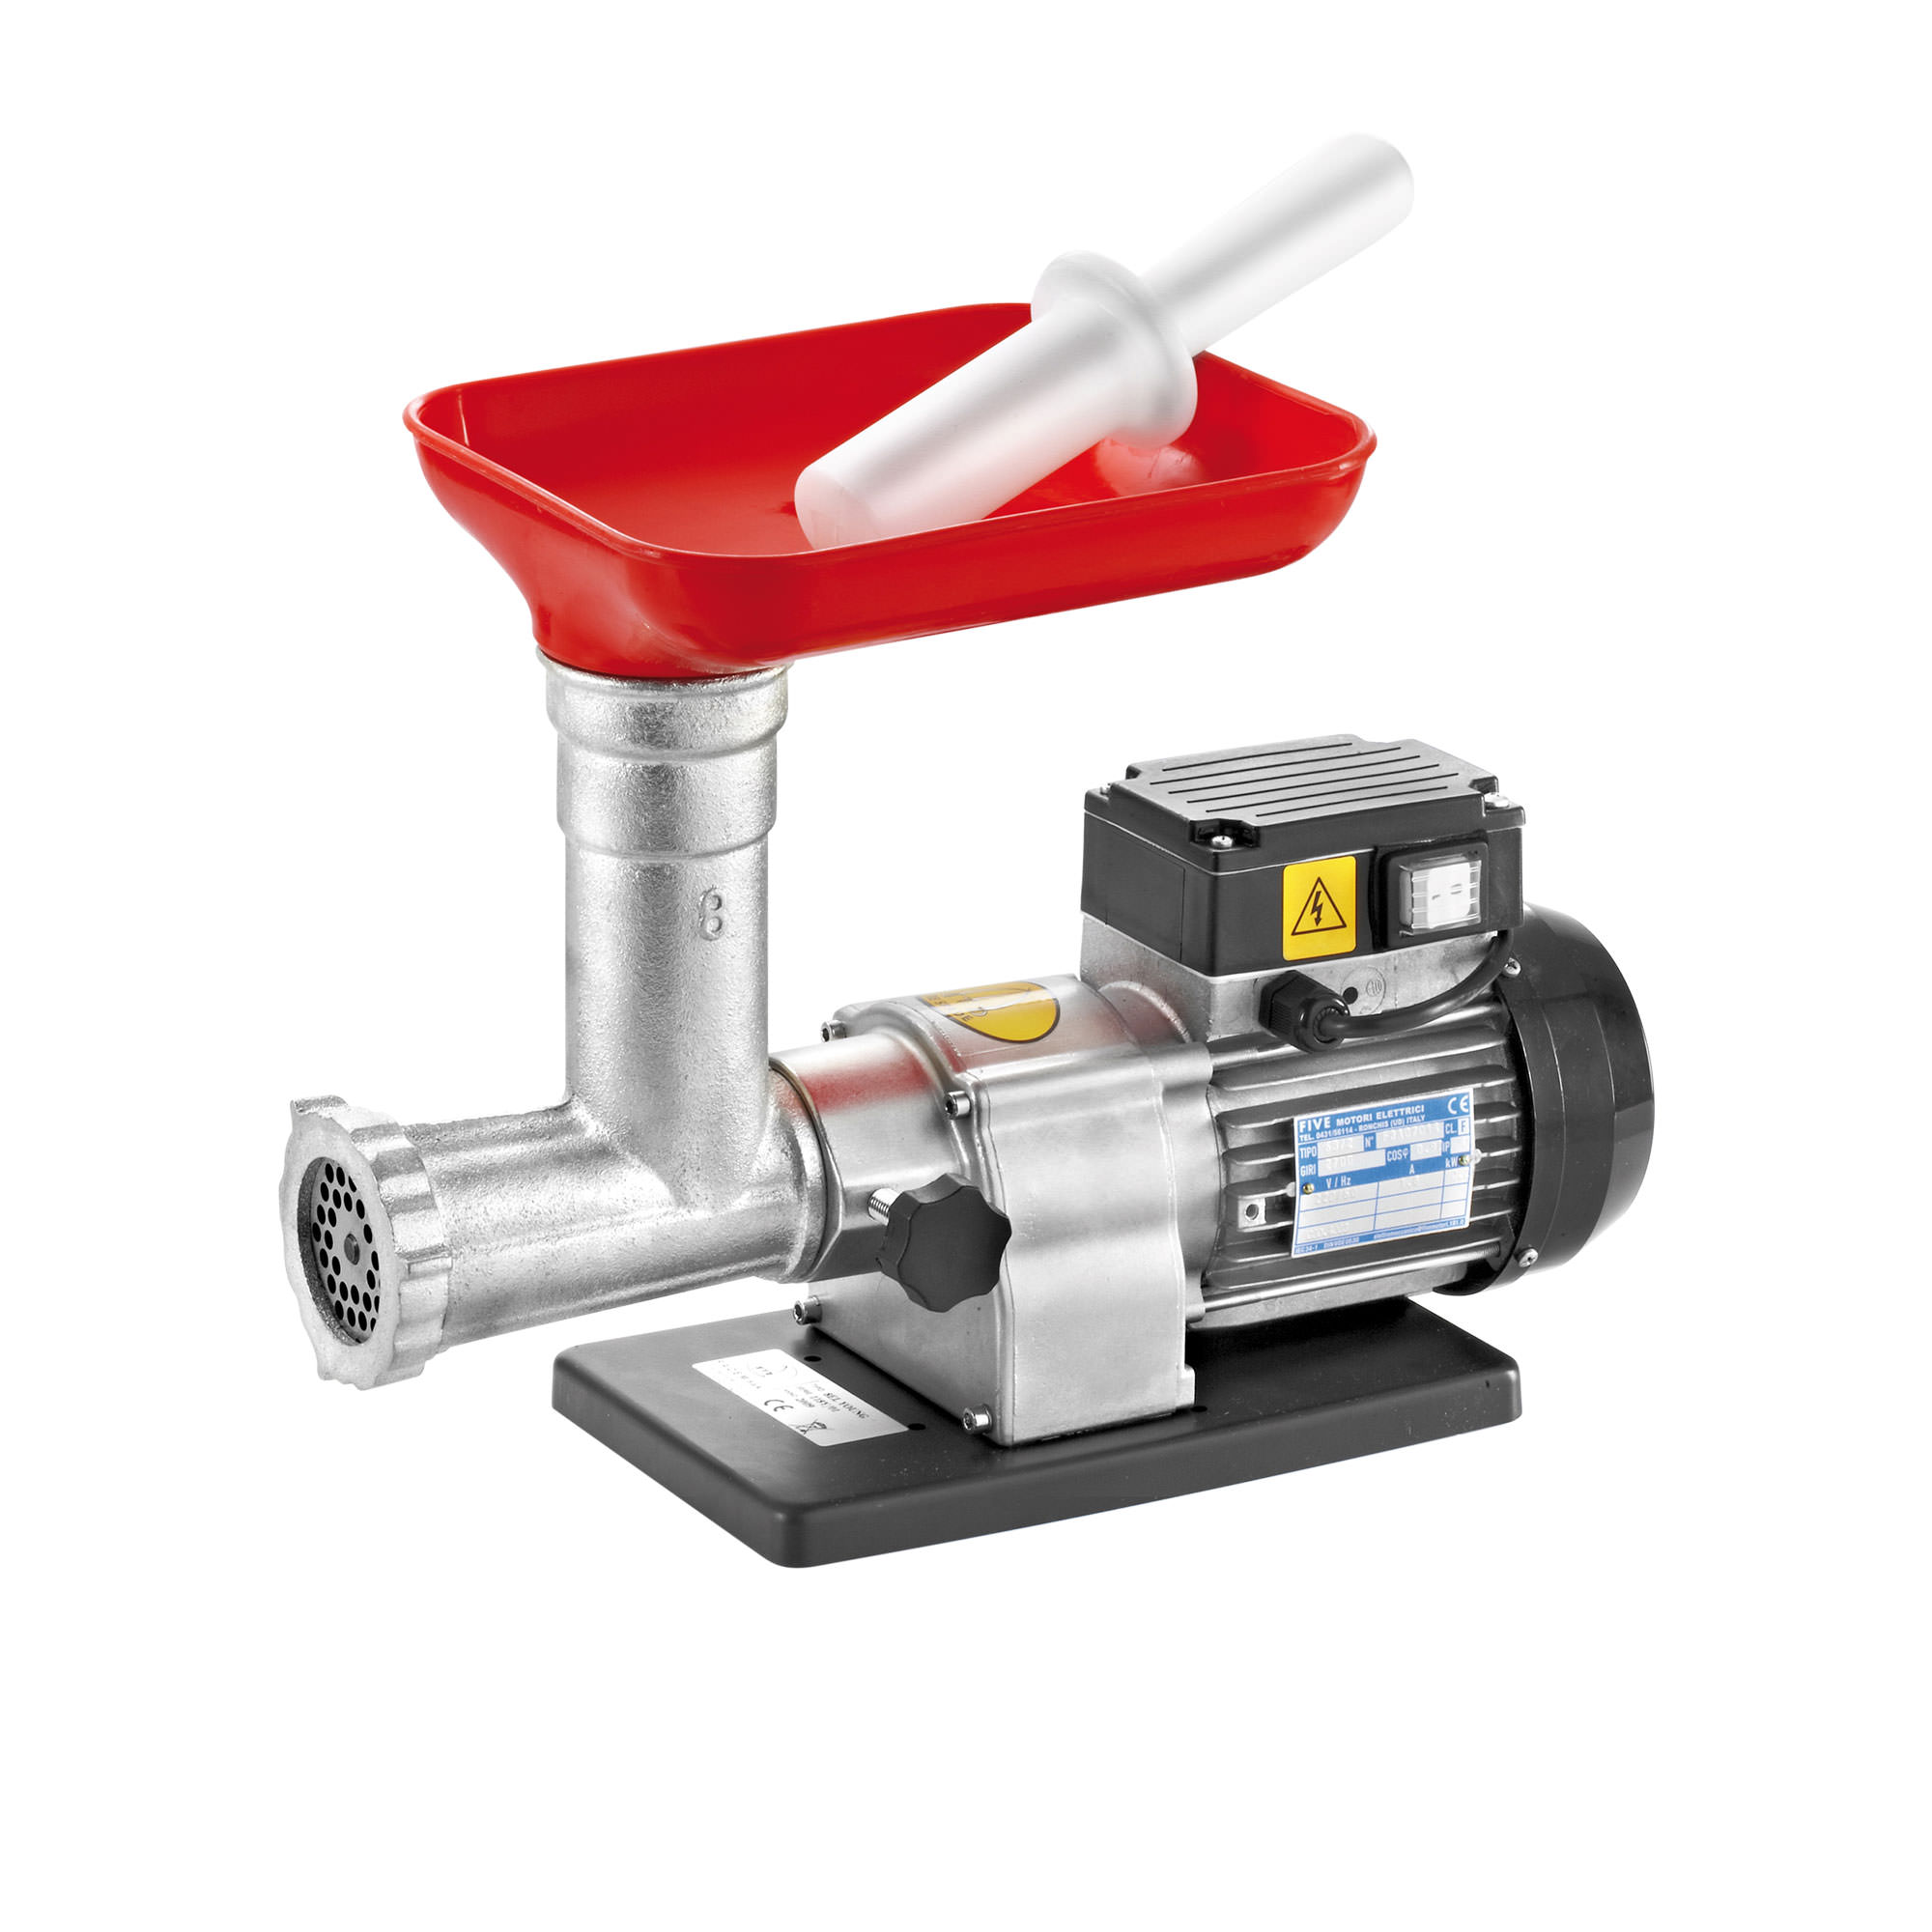 Tre Spade #8 Electric Mincer 0.4HP